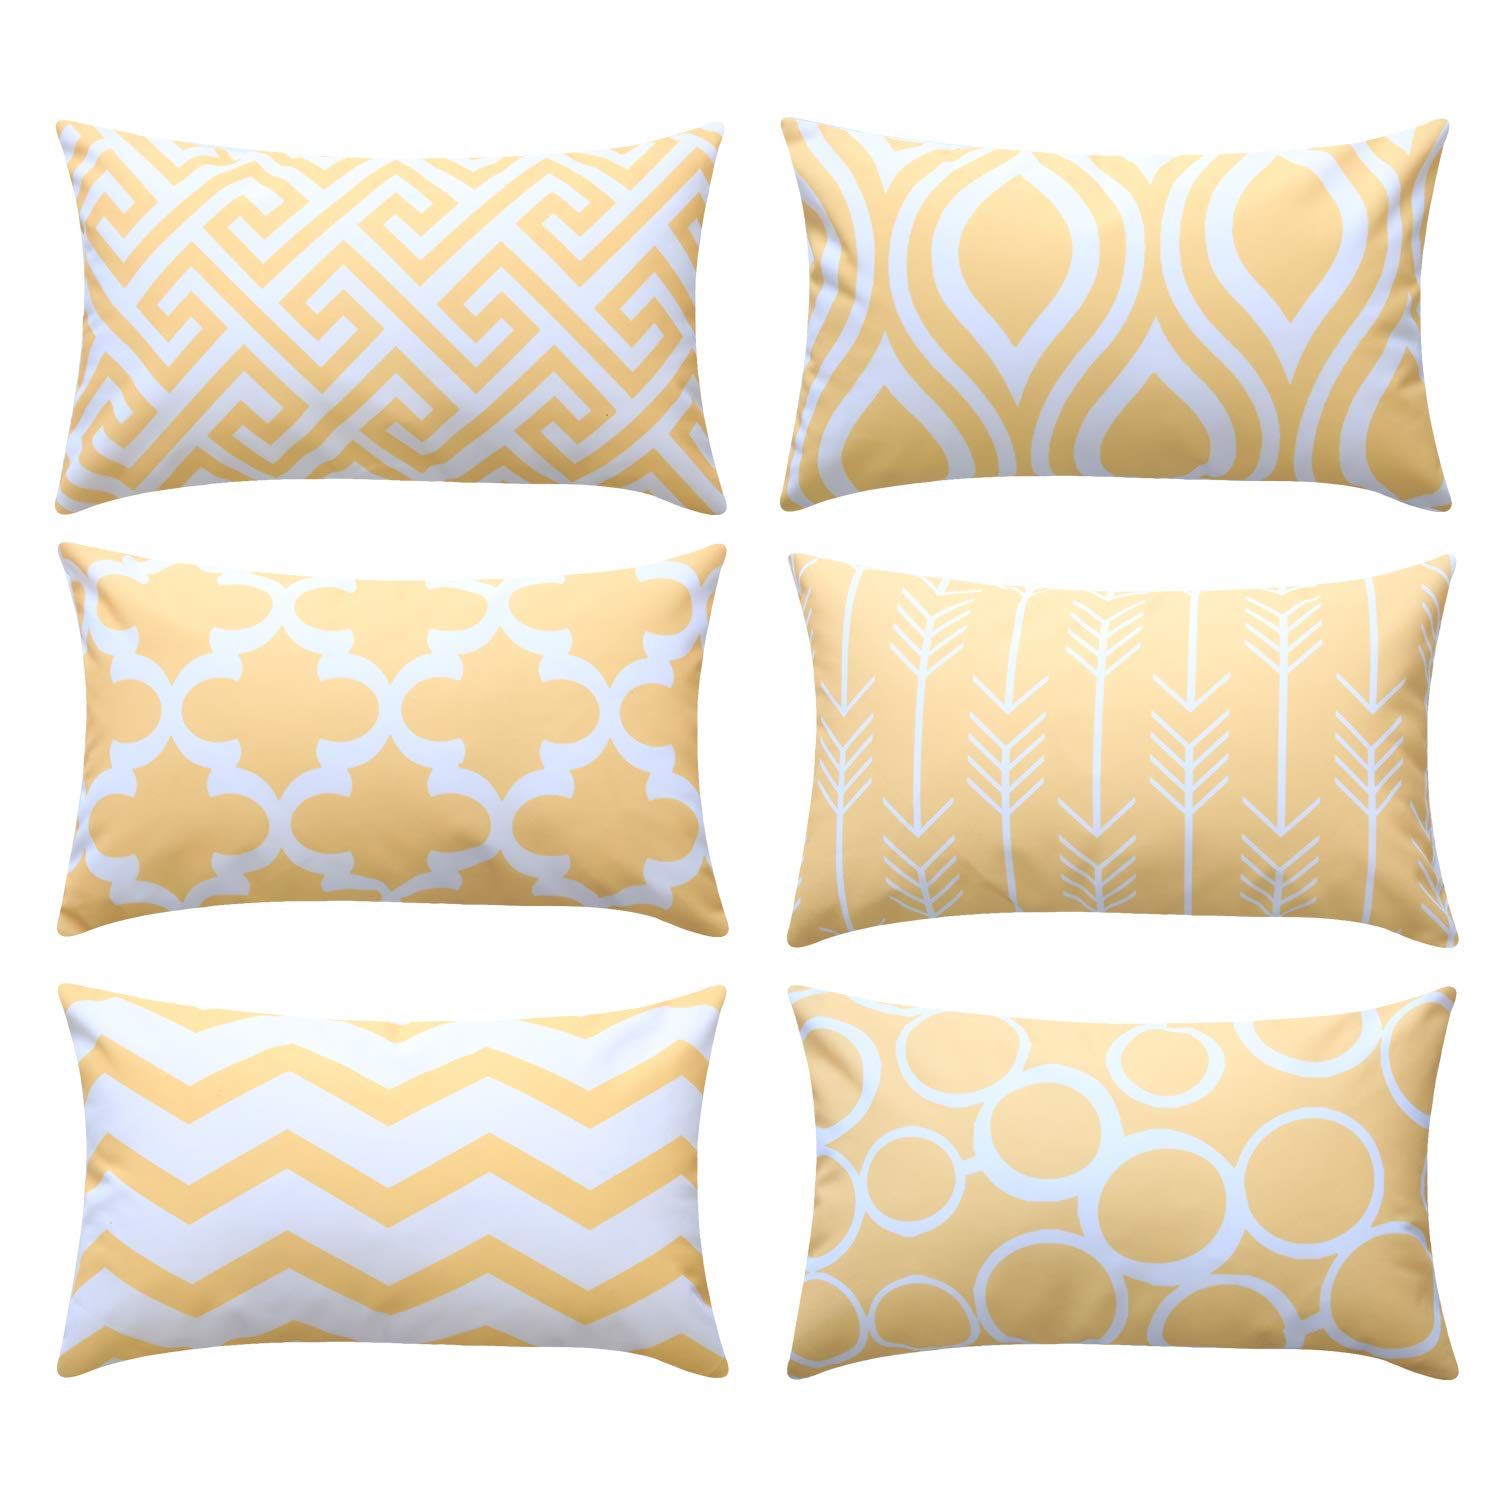 Top Finel Decorative Throw Pillow Cases Durable Canvas Outdoor Cushion Covers 12 x 20 for Couch Sofa Bedroom Car, Pack of 6, Light Yellow